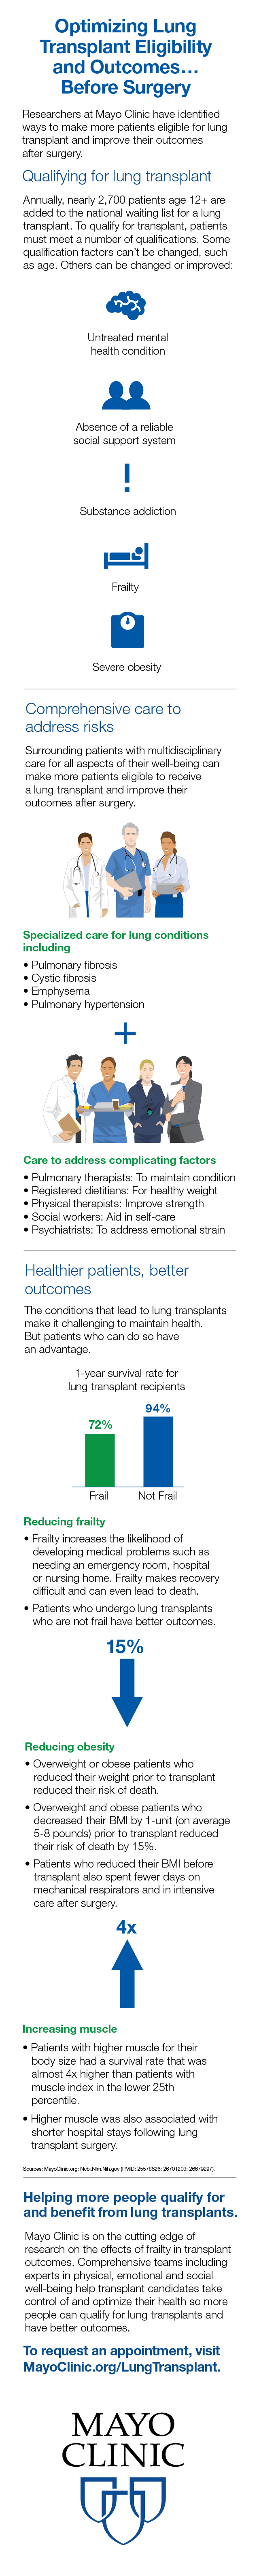 infographic for Optimizing lung transplant eligibility and outcomes